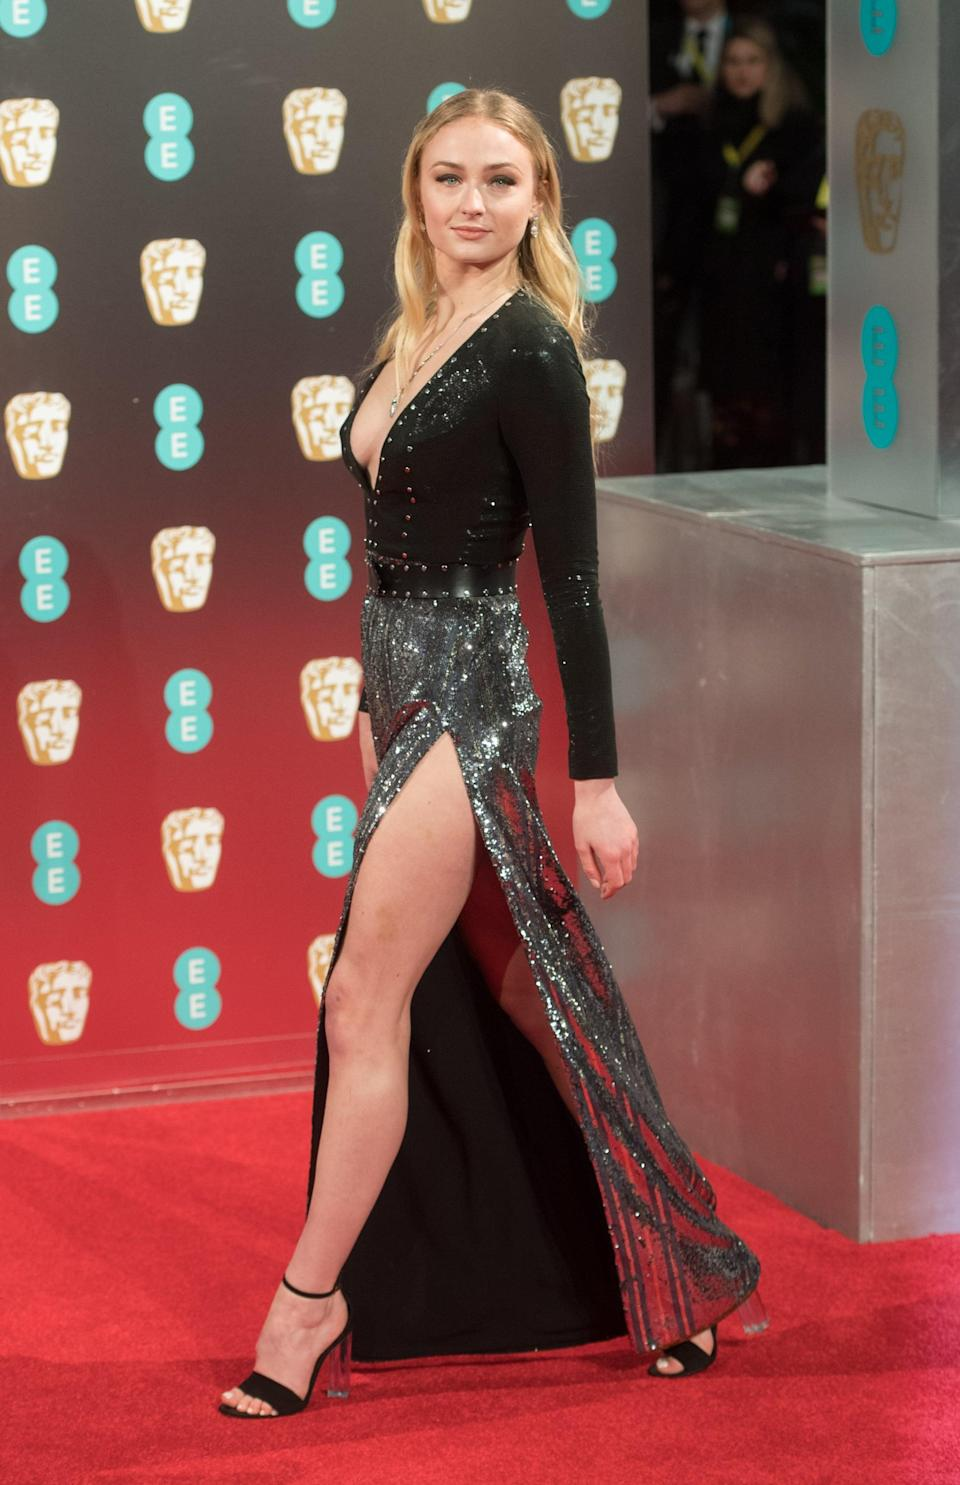 <p>Sophie worked the thigh-high slit on this ombré effect sequined Louis Vuitton dress at the 2017 BAFTAs, finishing the look with a lucite platform sandal, also by LV.</p>